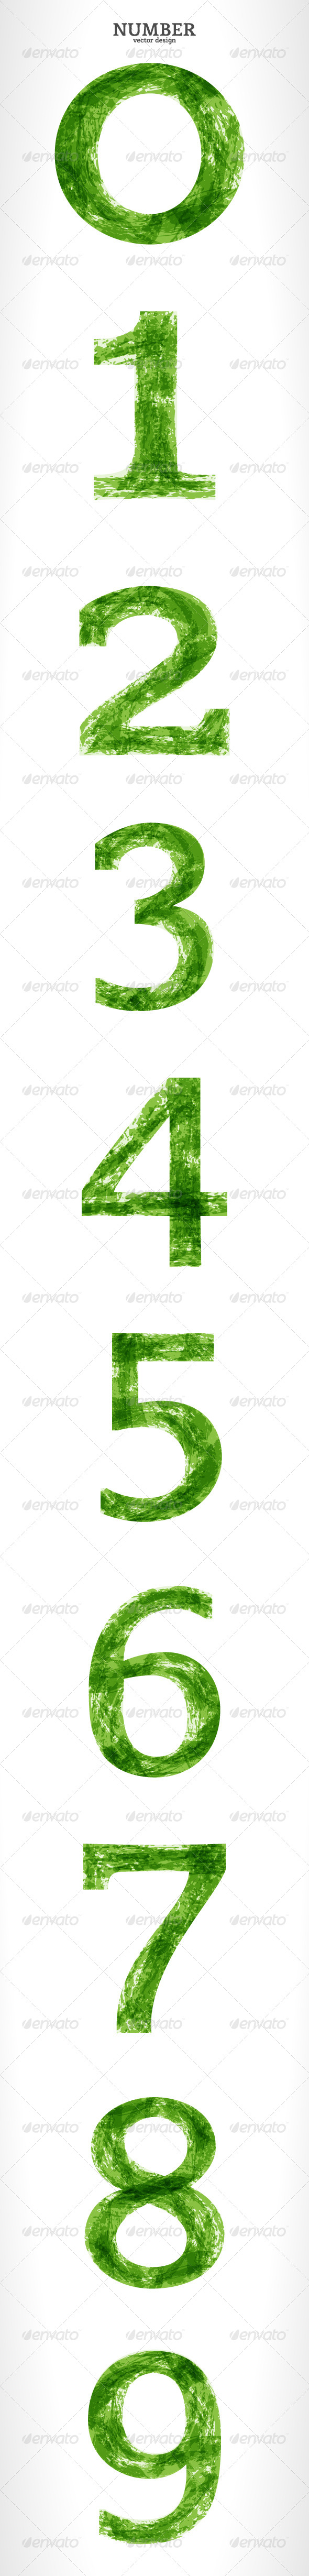 GraphicRiver Grunge Vector Number 4079058